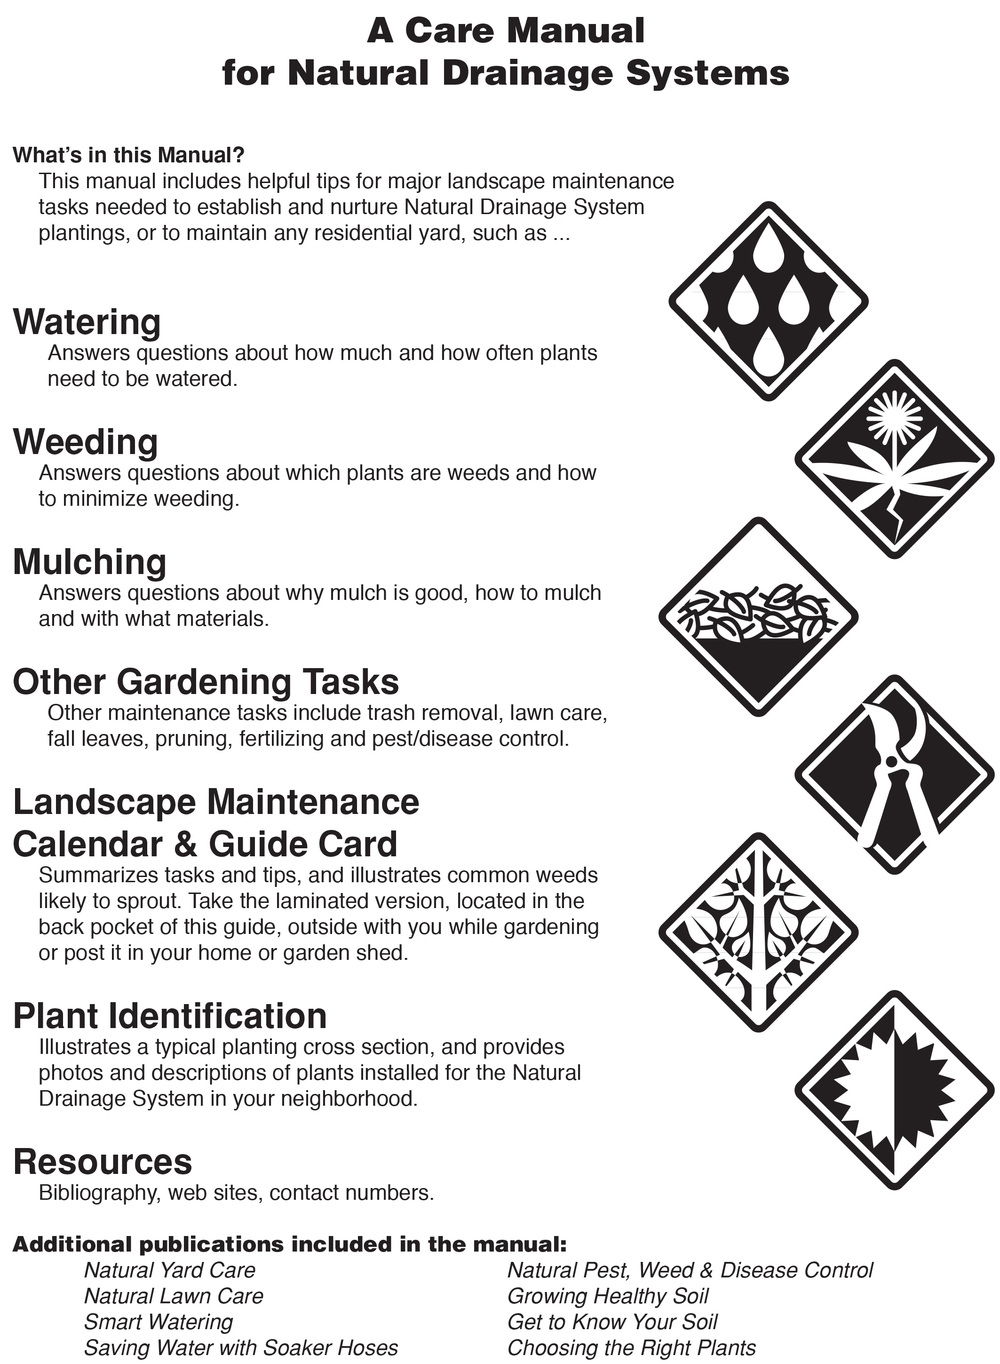 PracticallyEasyLandscapeMaintenance-3.jpg